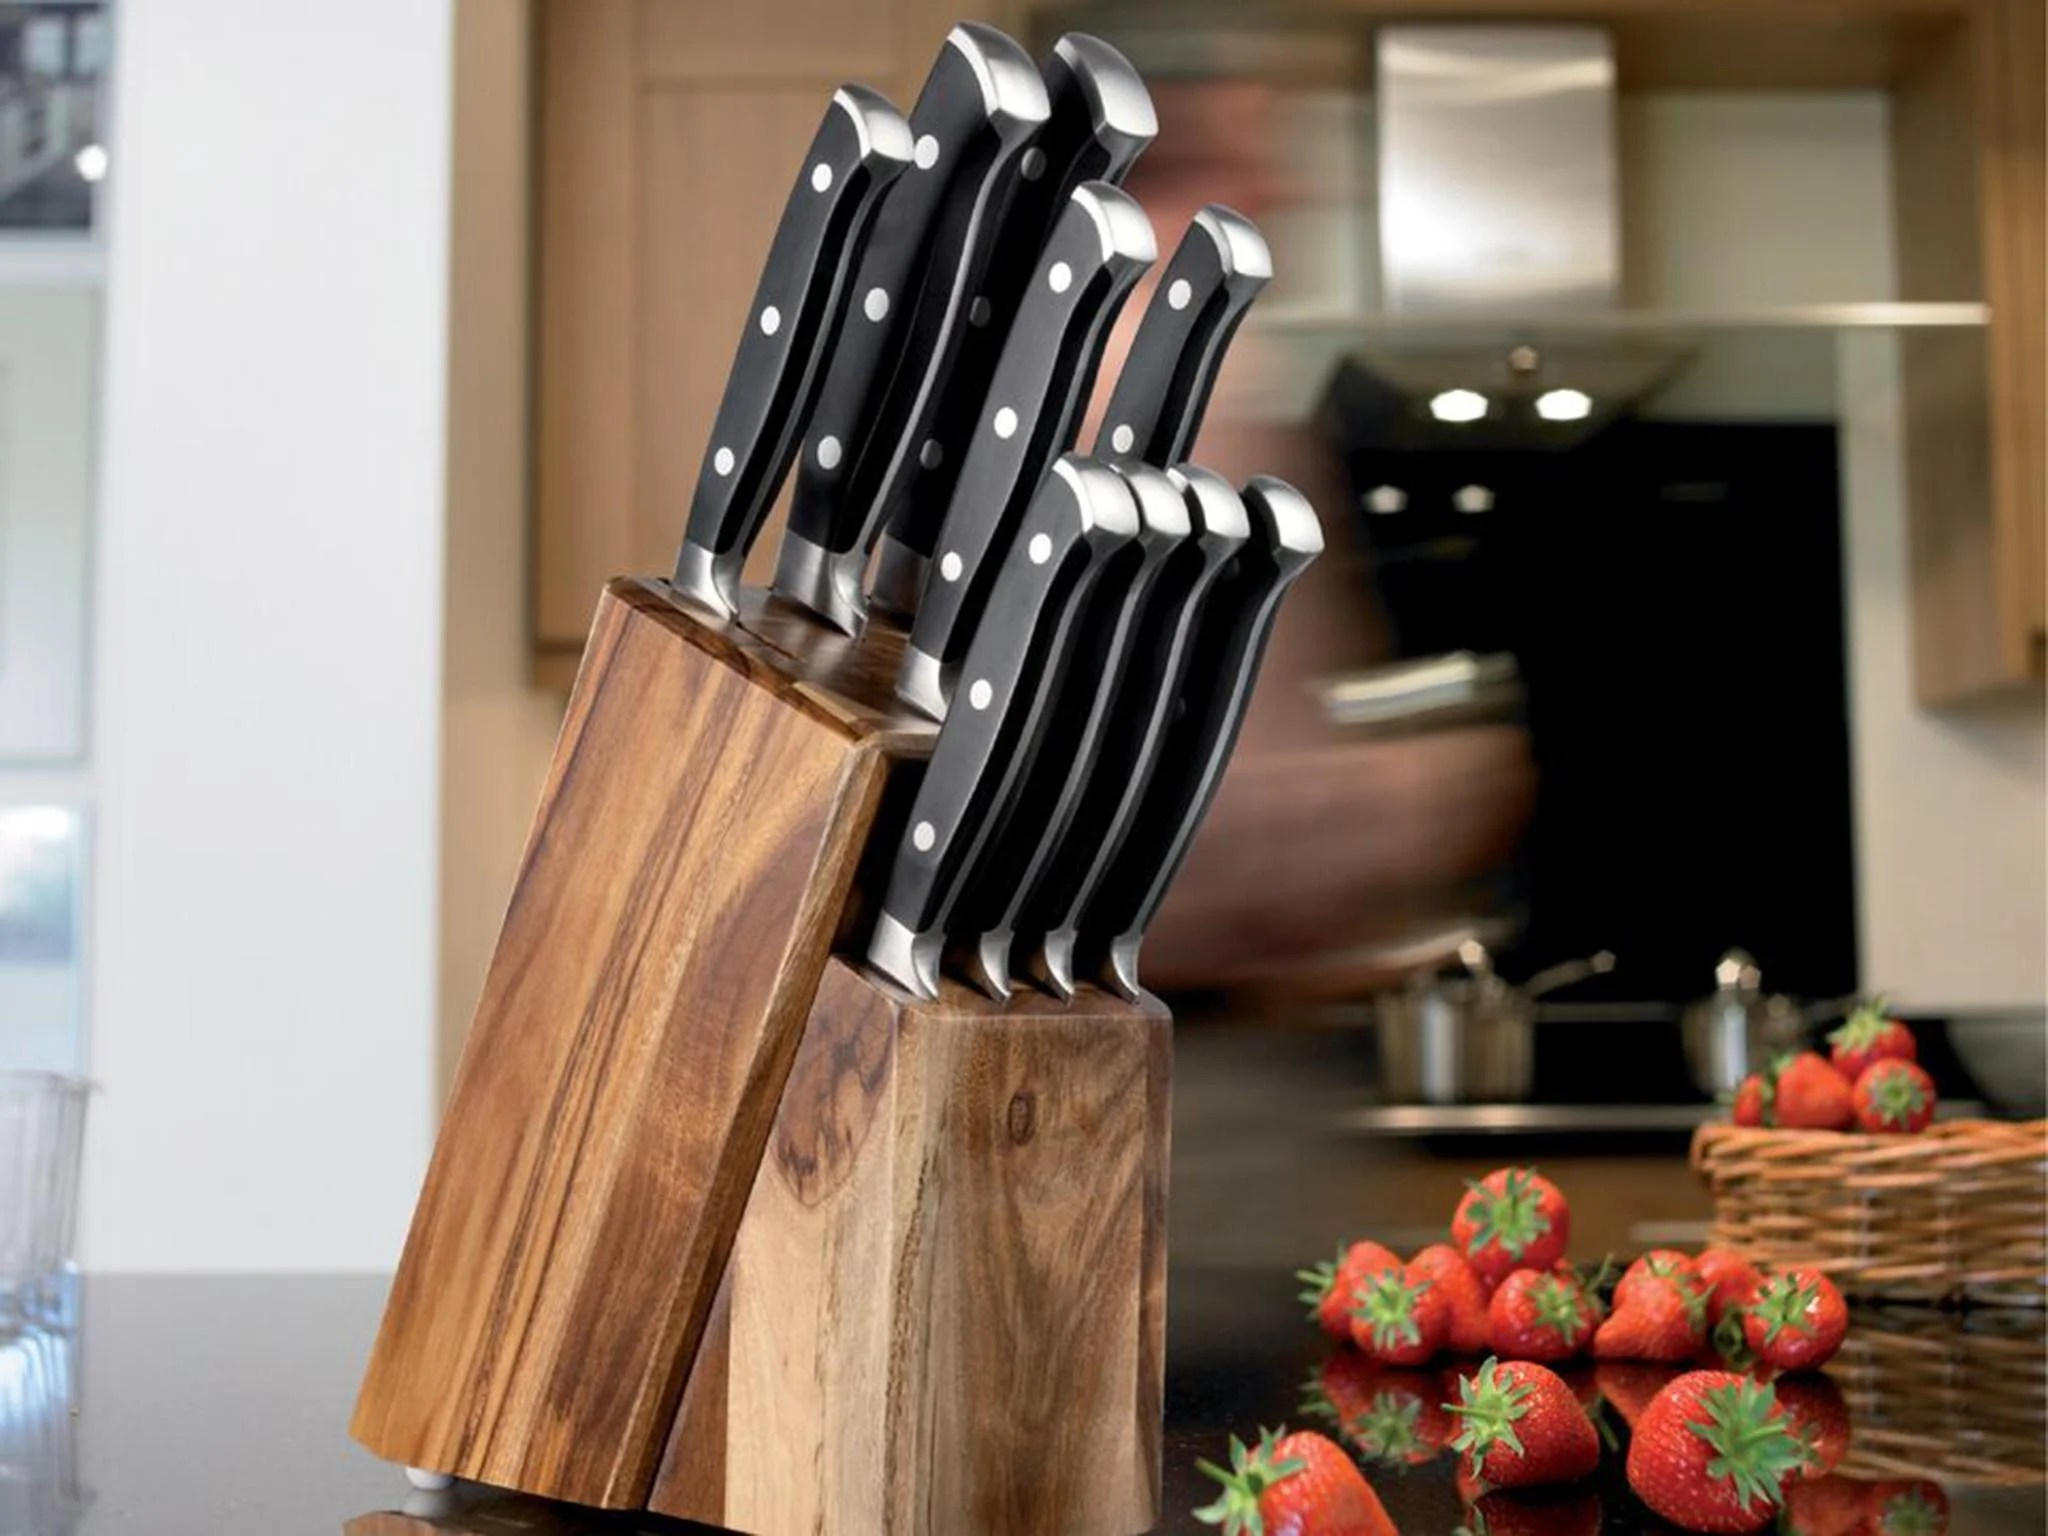 kitchen knife sets for sale tall bin 15 best the independent taylor s eye witness set includes four steak knives